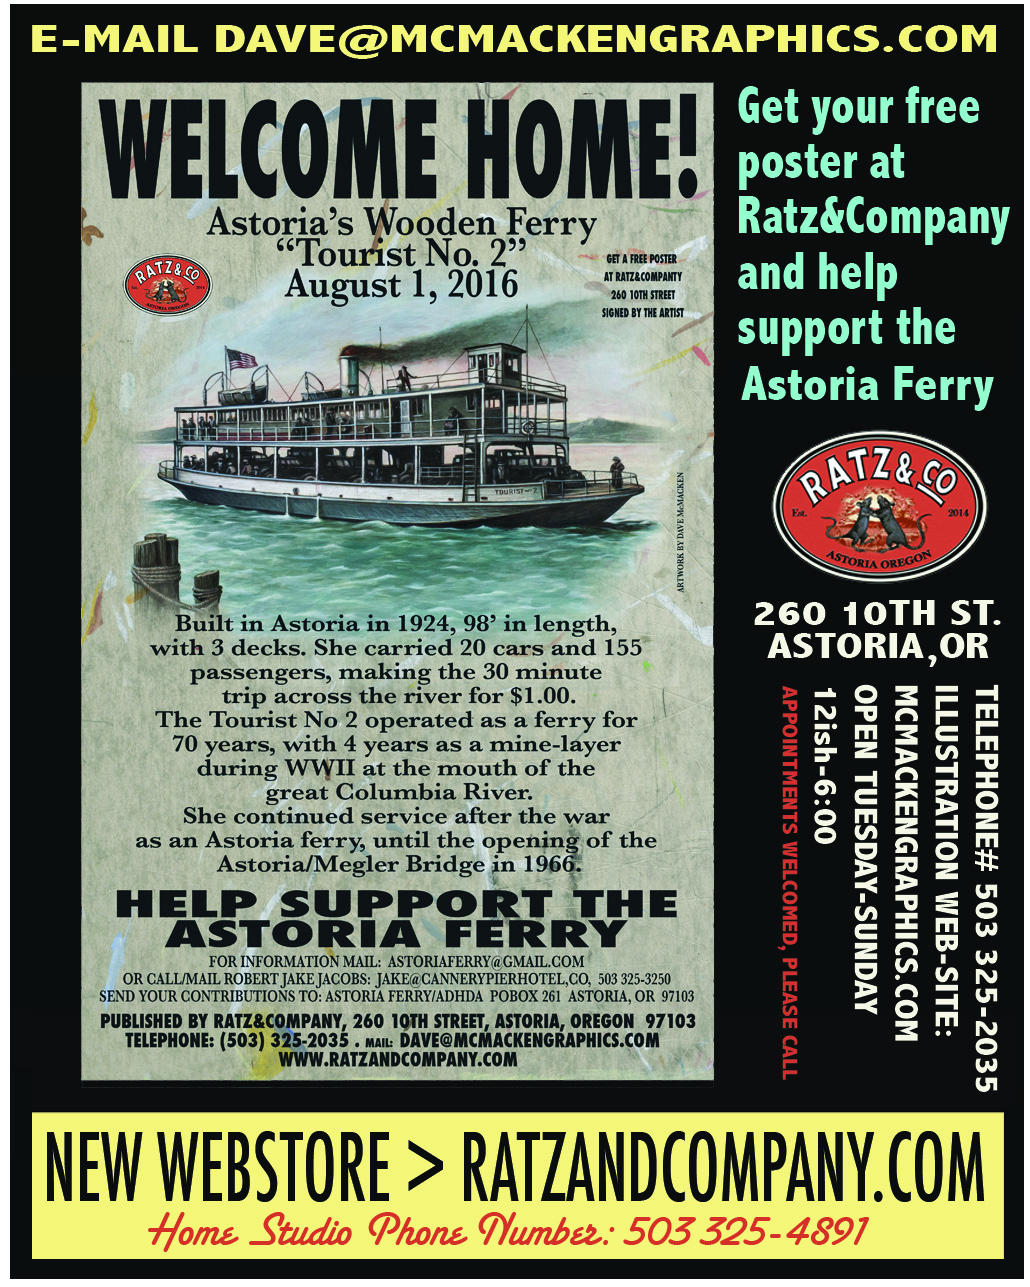 Help Support The Astoria Ferry: